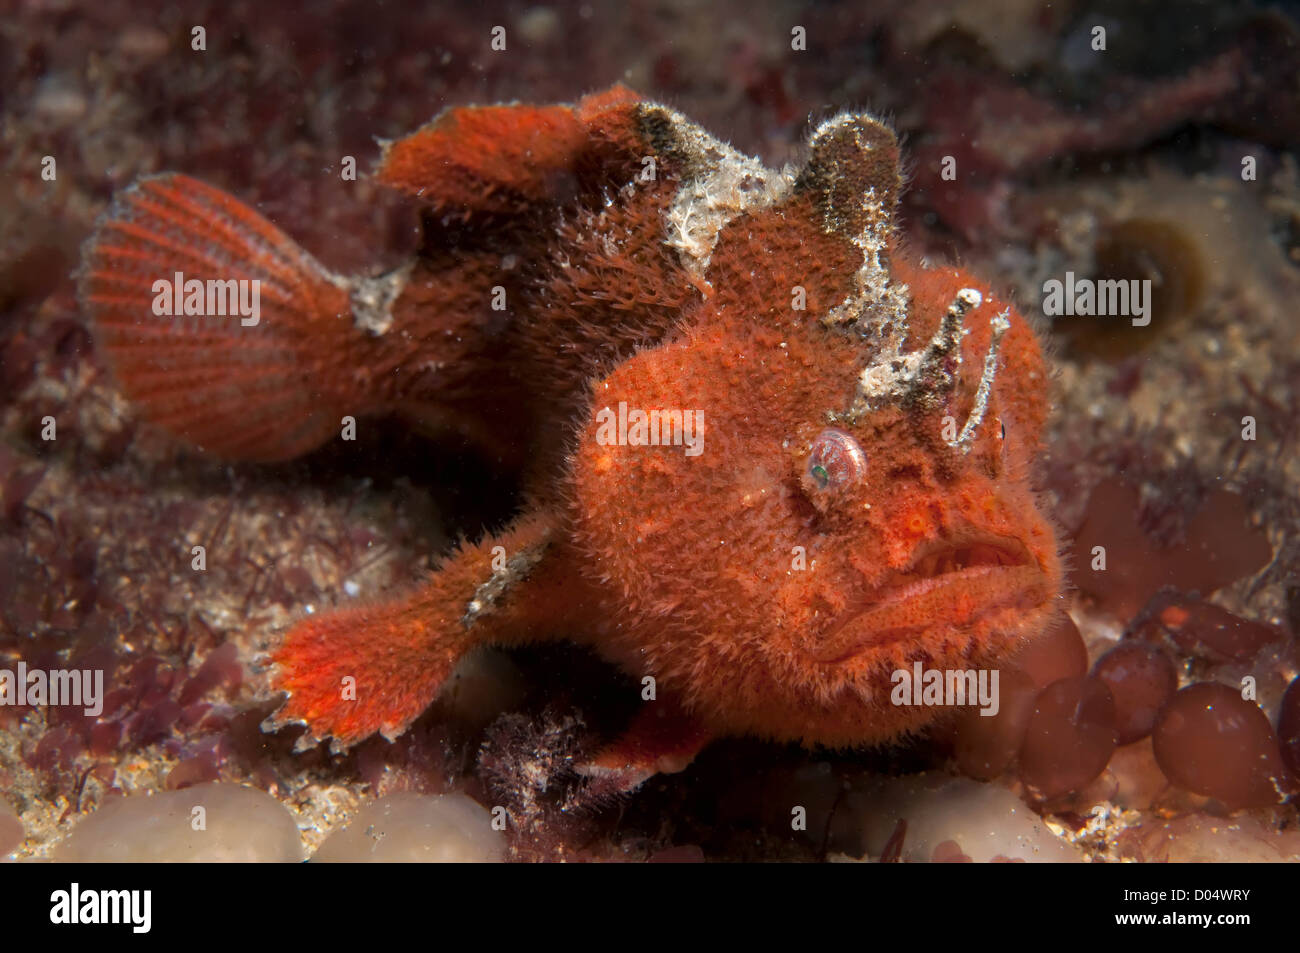 Prickly Anglerfish Stock Photo: 51739183 - Alamy